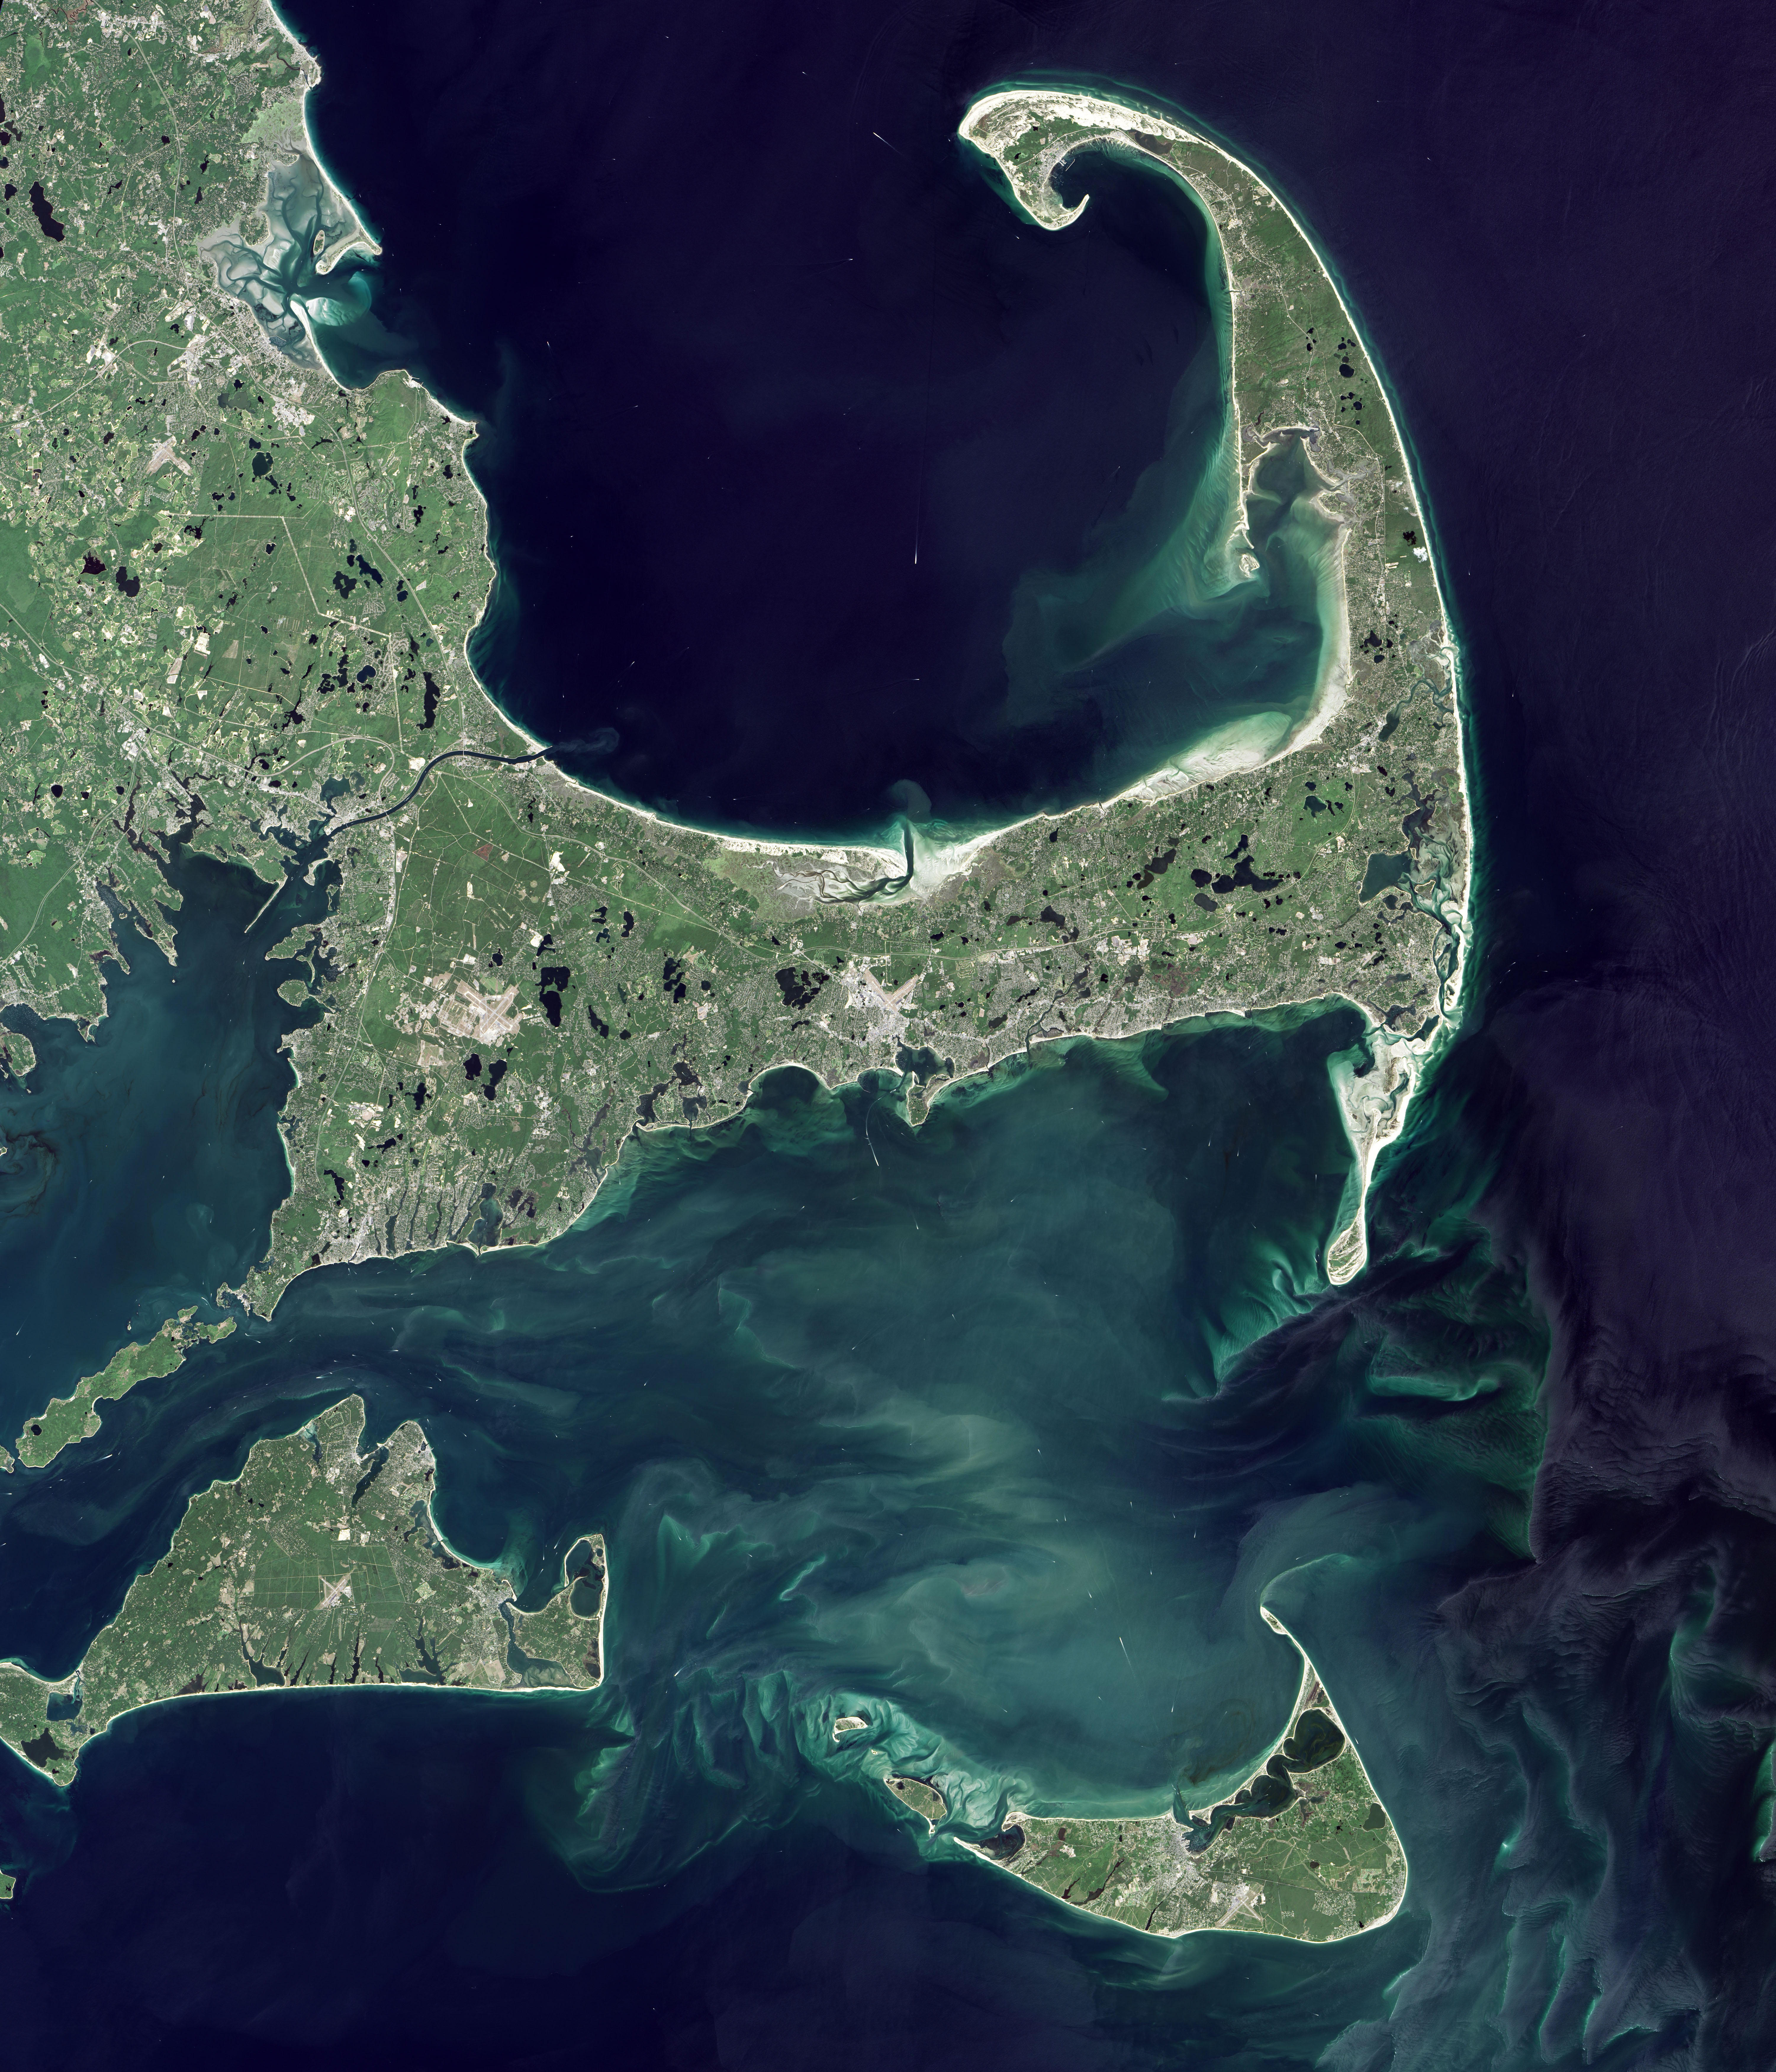 Cape Cod National Seashore : Image Of The Day